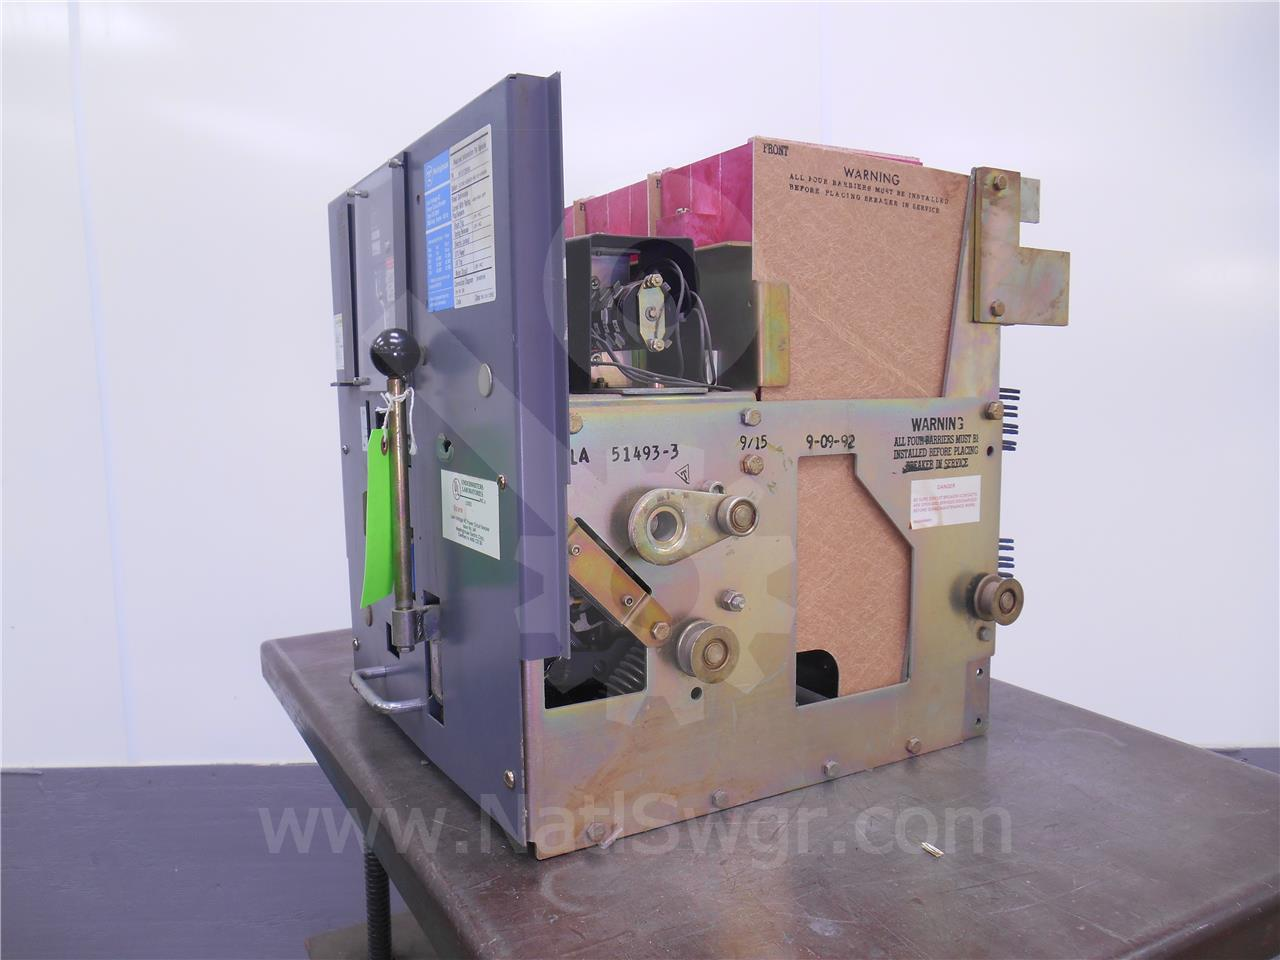 DS-206H 800A Westinghouse EO/DO 120VAC CONTROLS, RMS 500 LSI, 400A CT, 400A RP